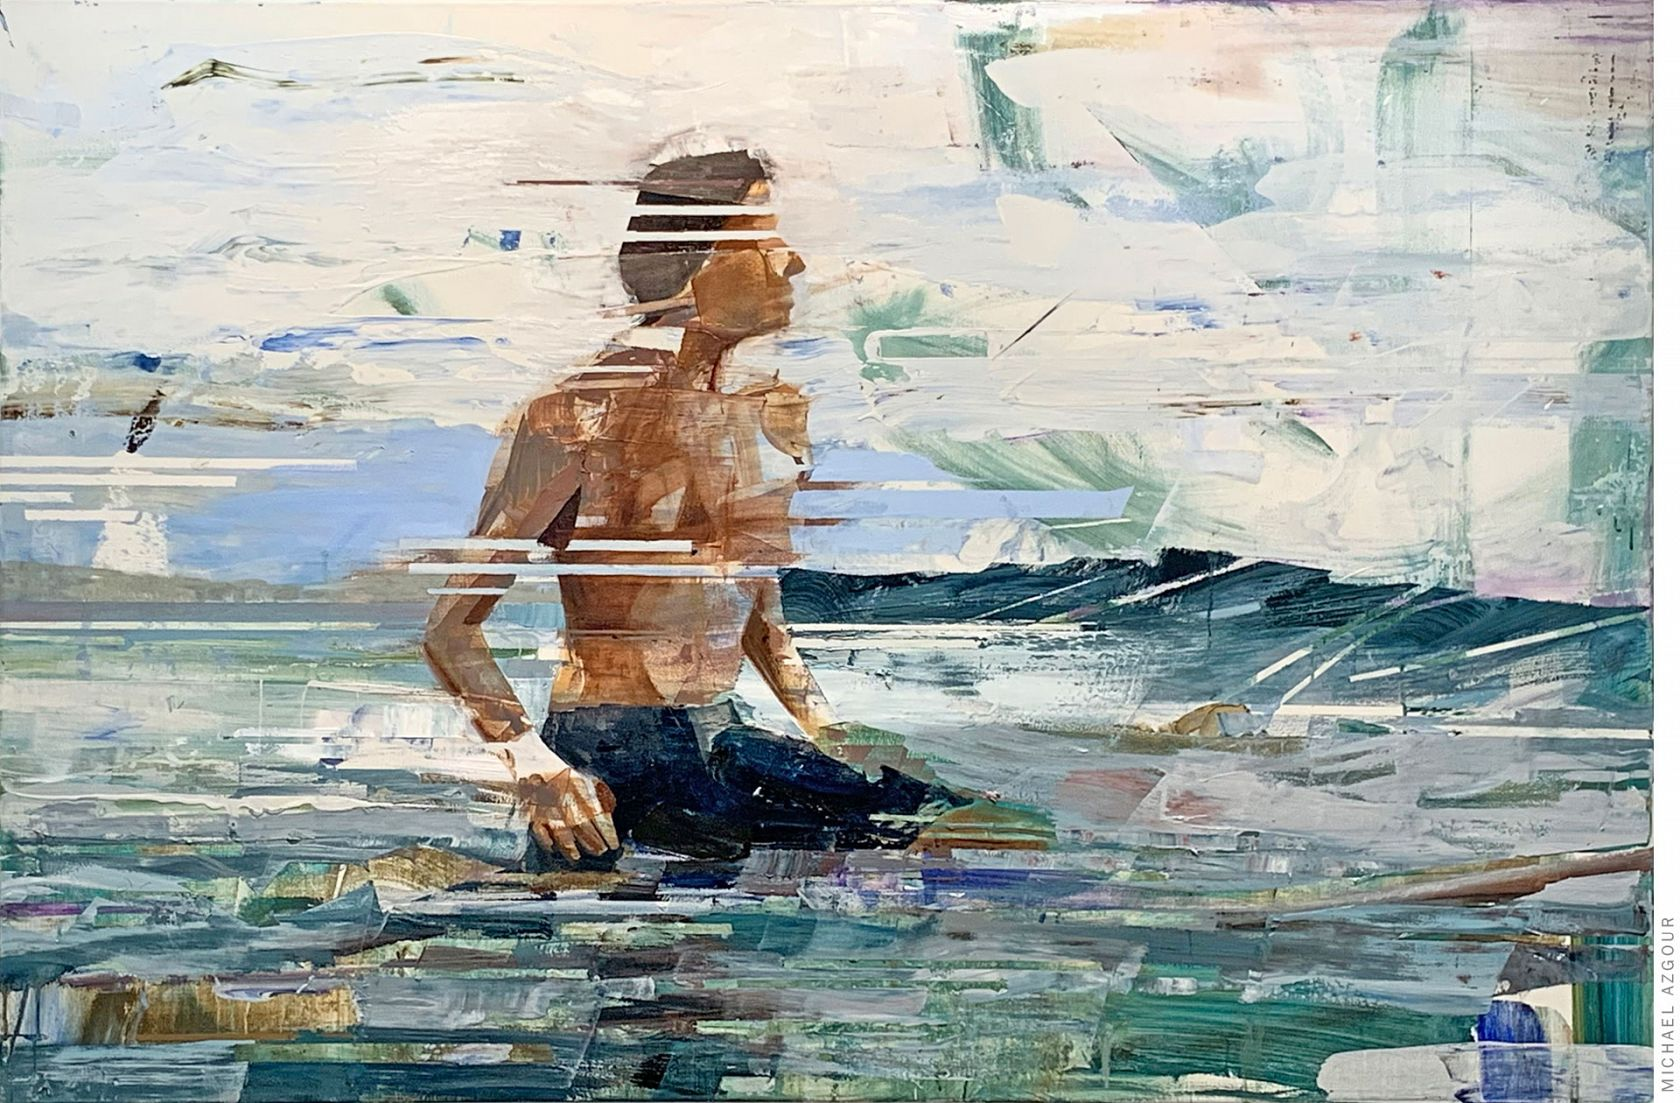 Painting of a surfer waiting for a wave, titled Waiting, by California based artist, Michael Azgour